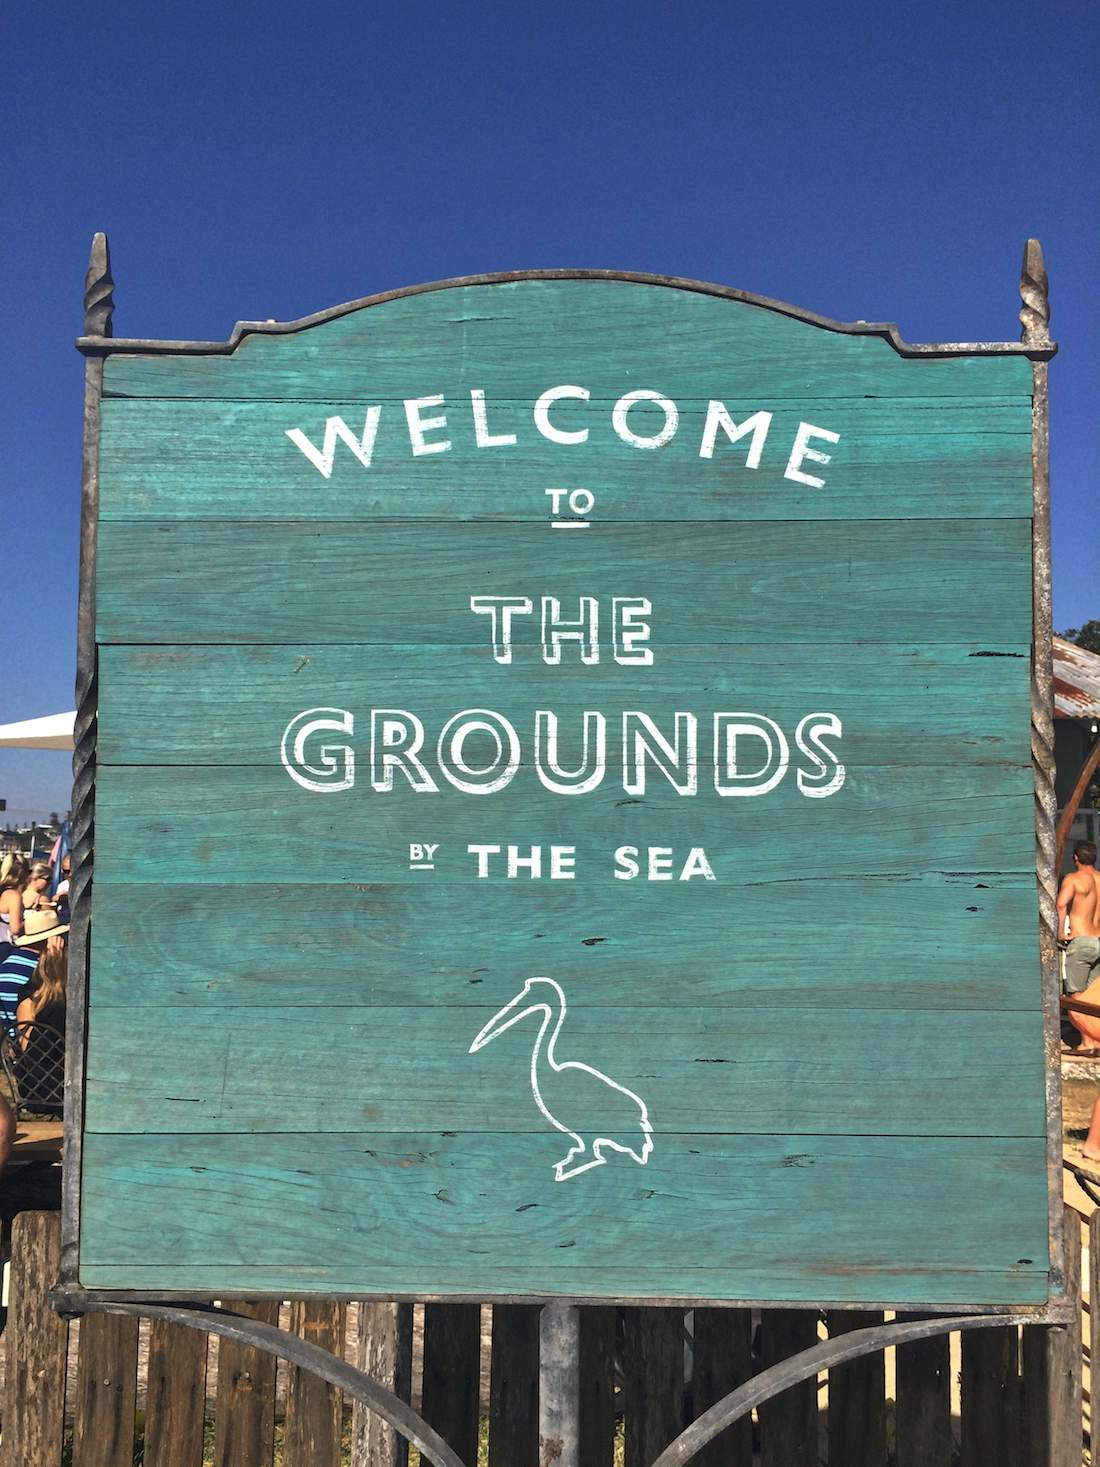 the-grounds-by-the-sea-welcome-sign